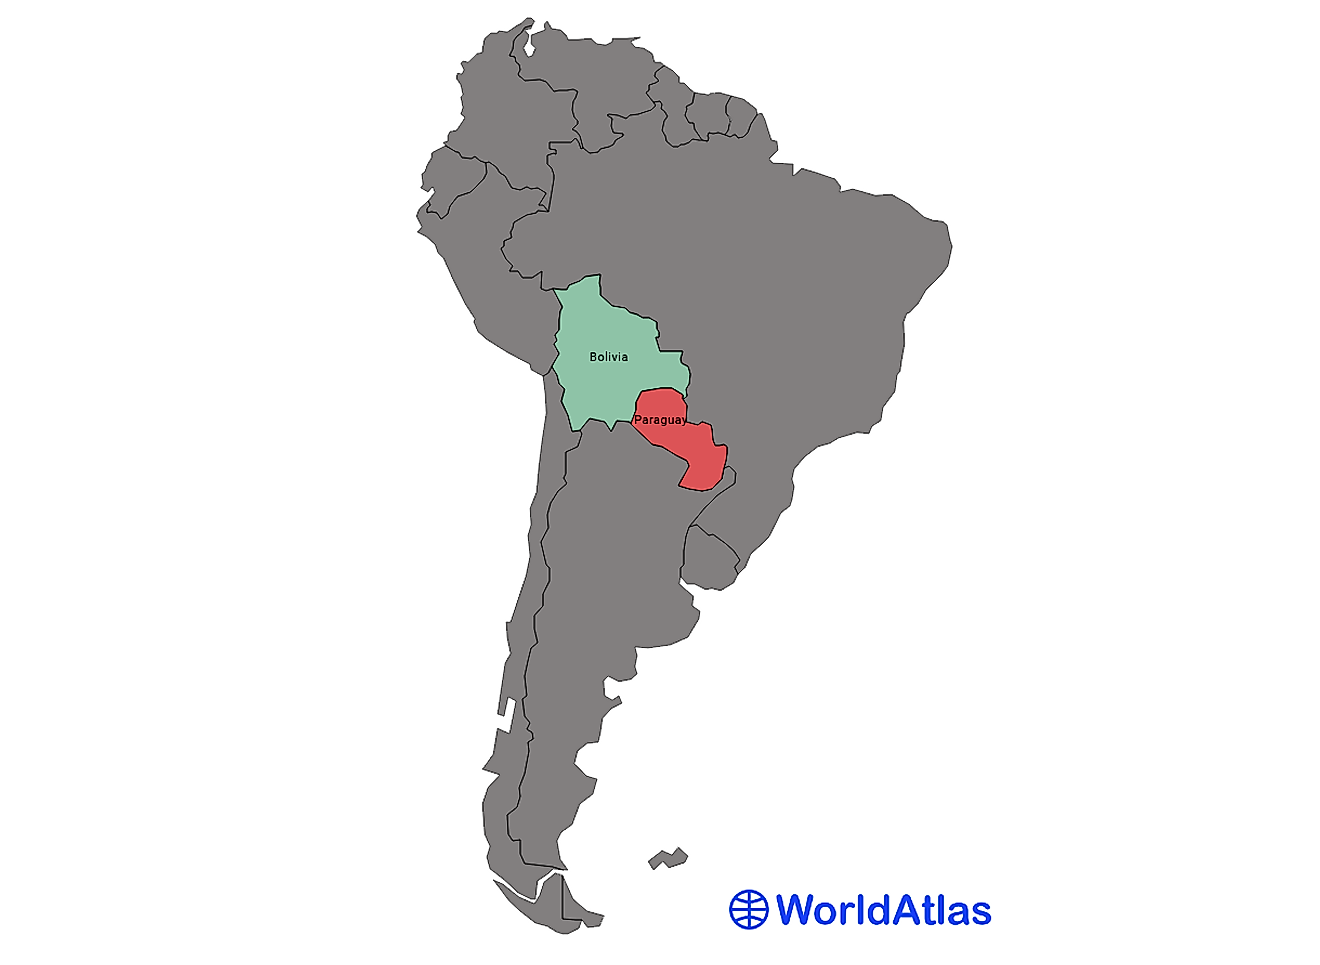 South America has 12 sovereign states; only Bolivia and Paraguay are are landlocked.